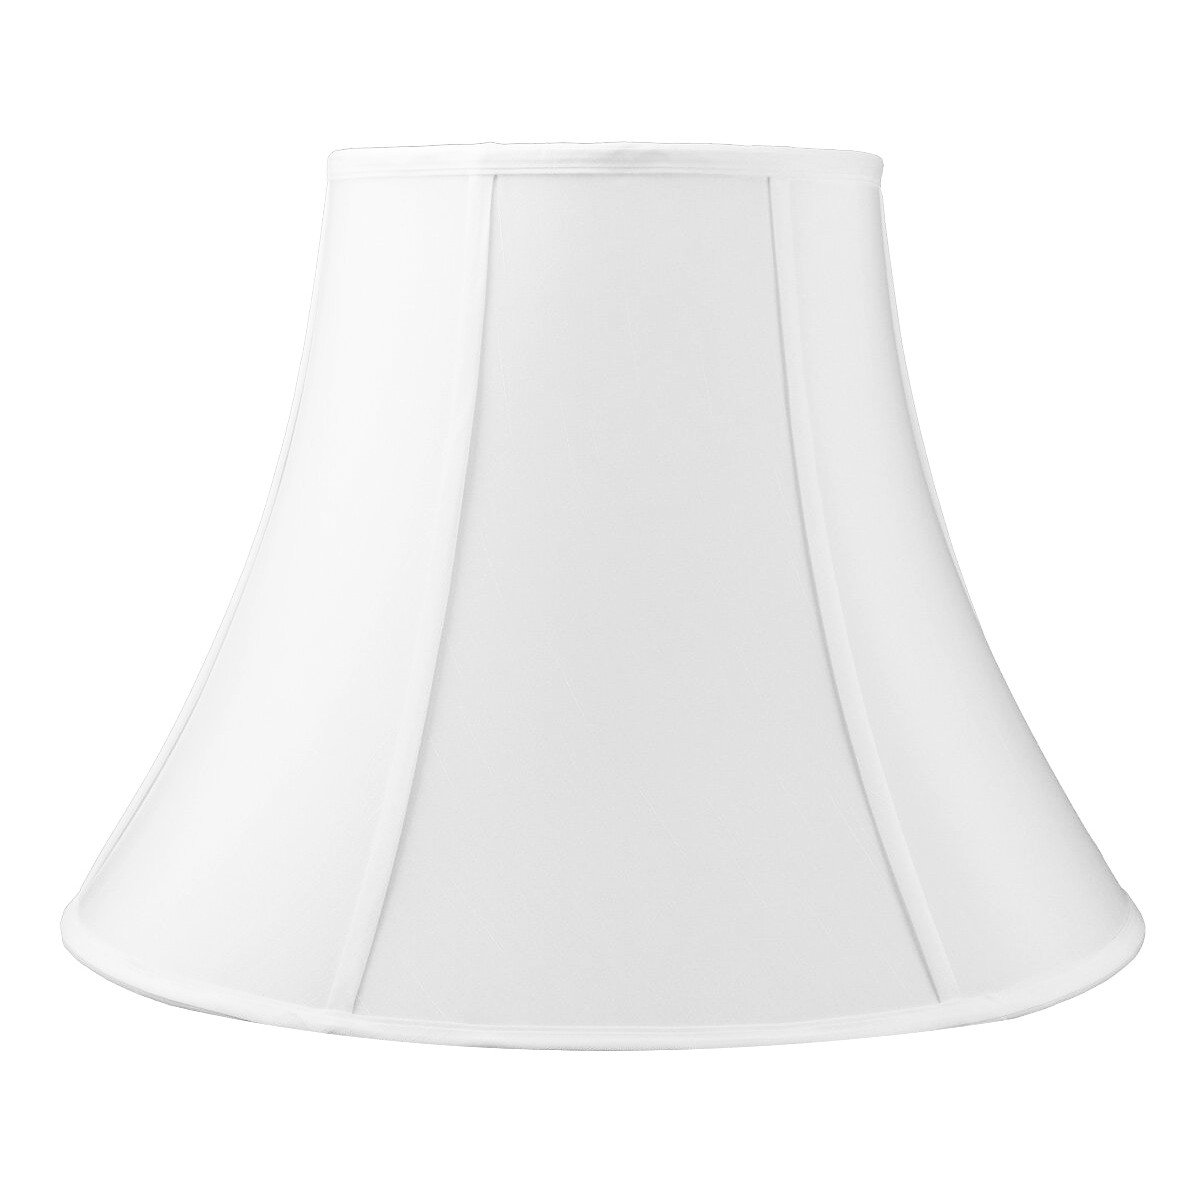 10x20x15 White Bell Shantung Shade with Brass Spider fitter by Home Concept - Perfect for table and Floor lamps - Extra Large, White